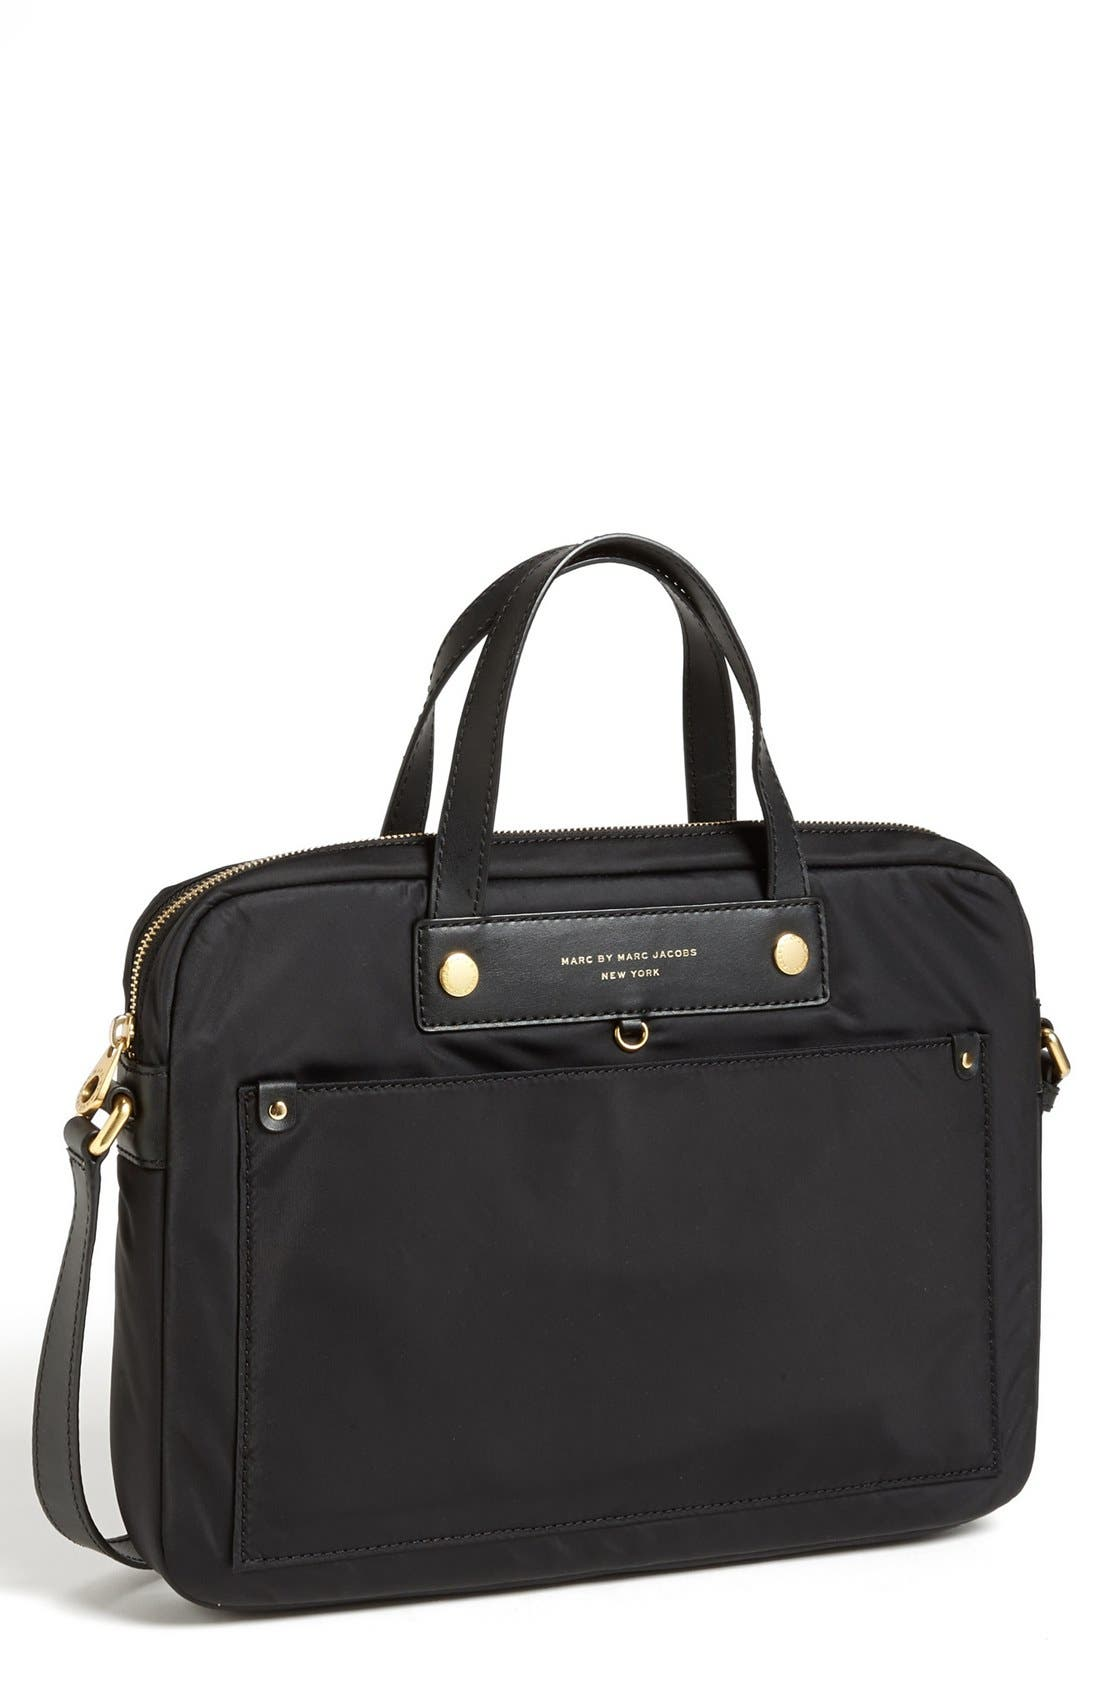 Alternate Image 1 Selected - MARC BY MARC JACOBS 'Preppy Nylon' Computer Commuter Bag (13 Inch)